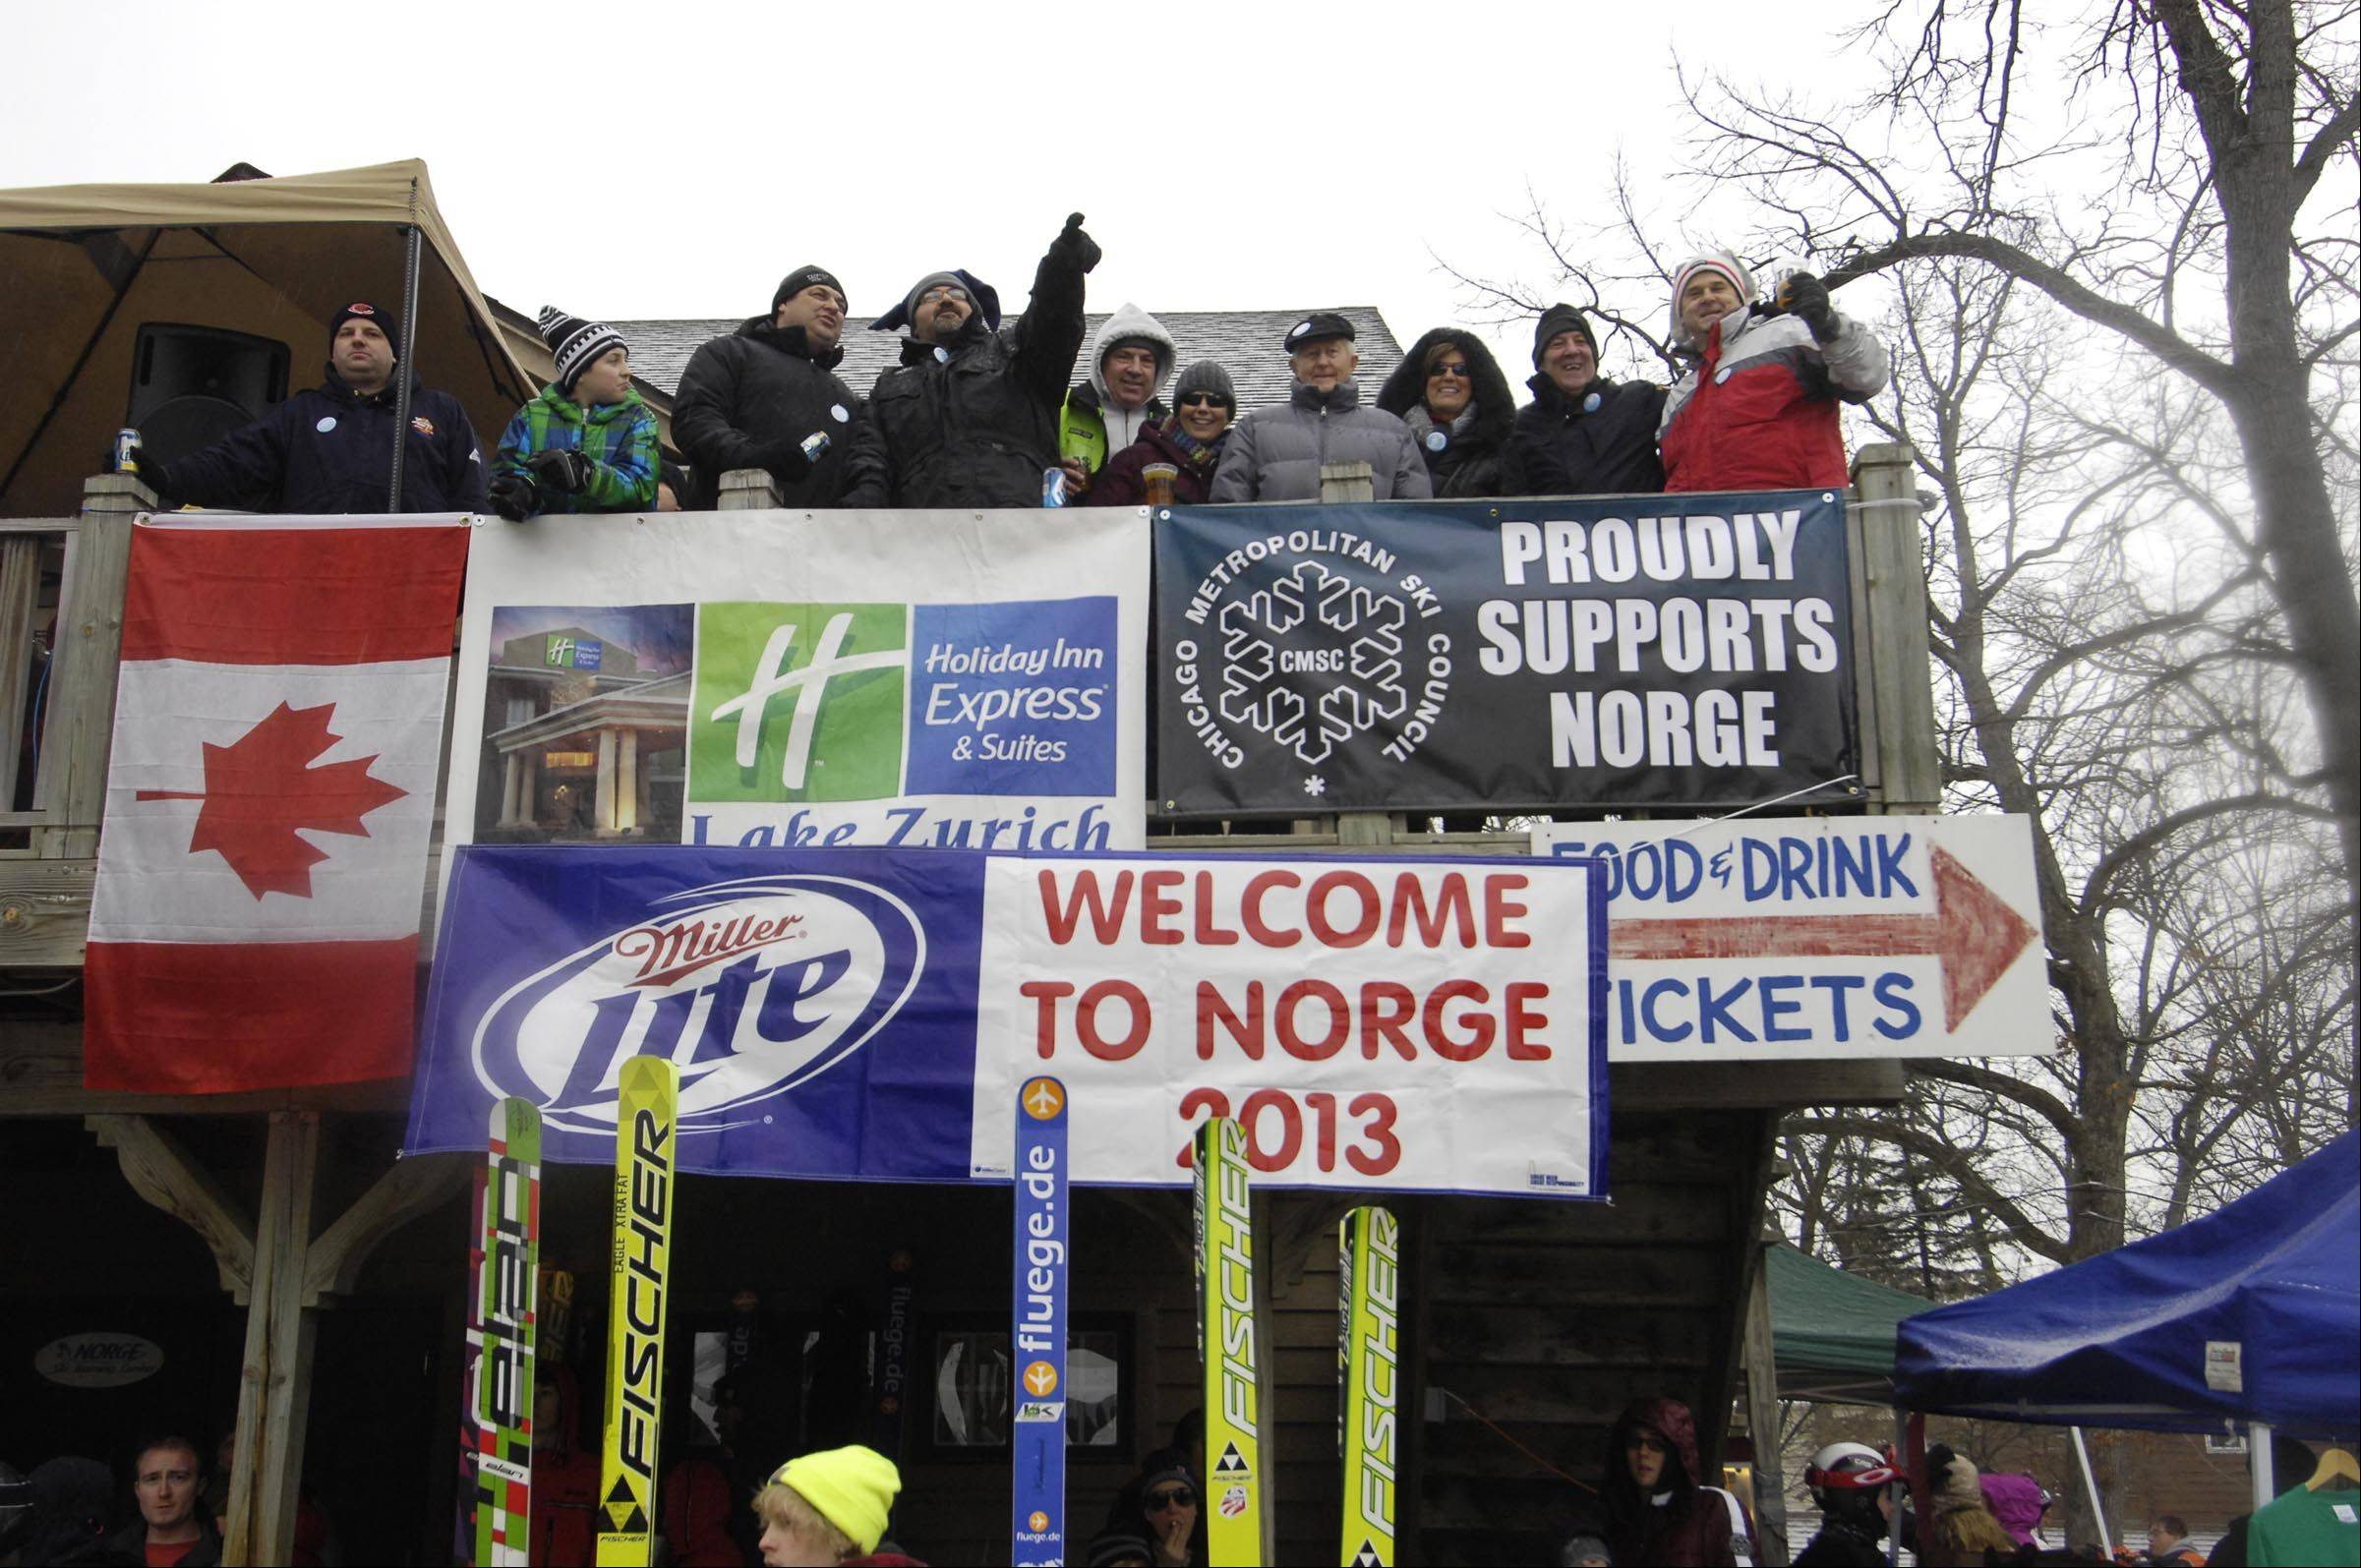 Spectators watch from the club house Sunday at the 108th Annual International Ski Jumping Tournament at Norge Ski Club in Fox River Grove.